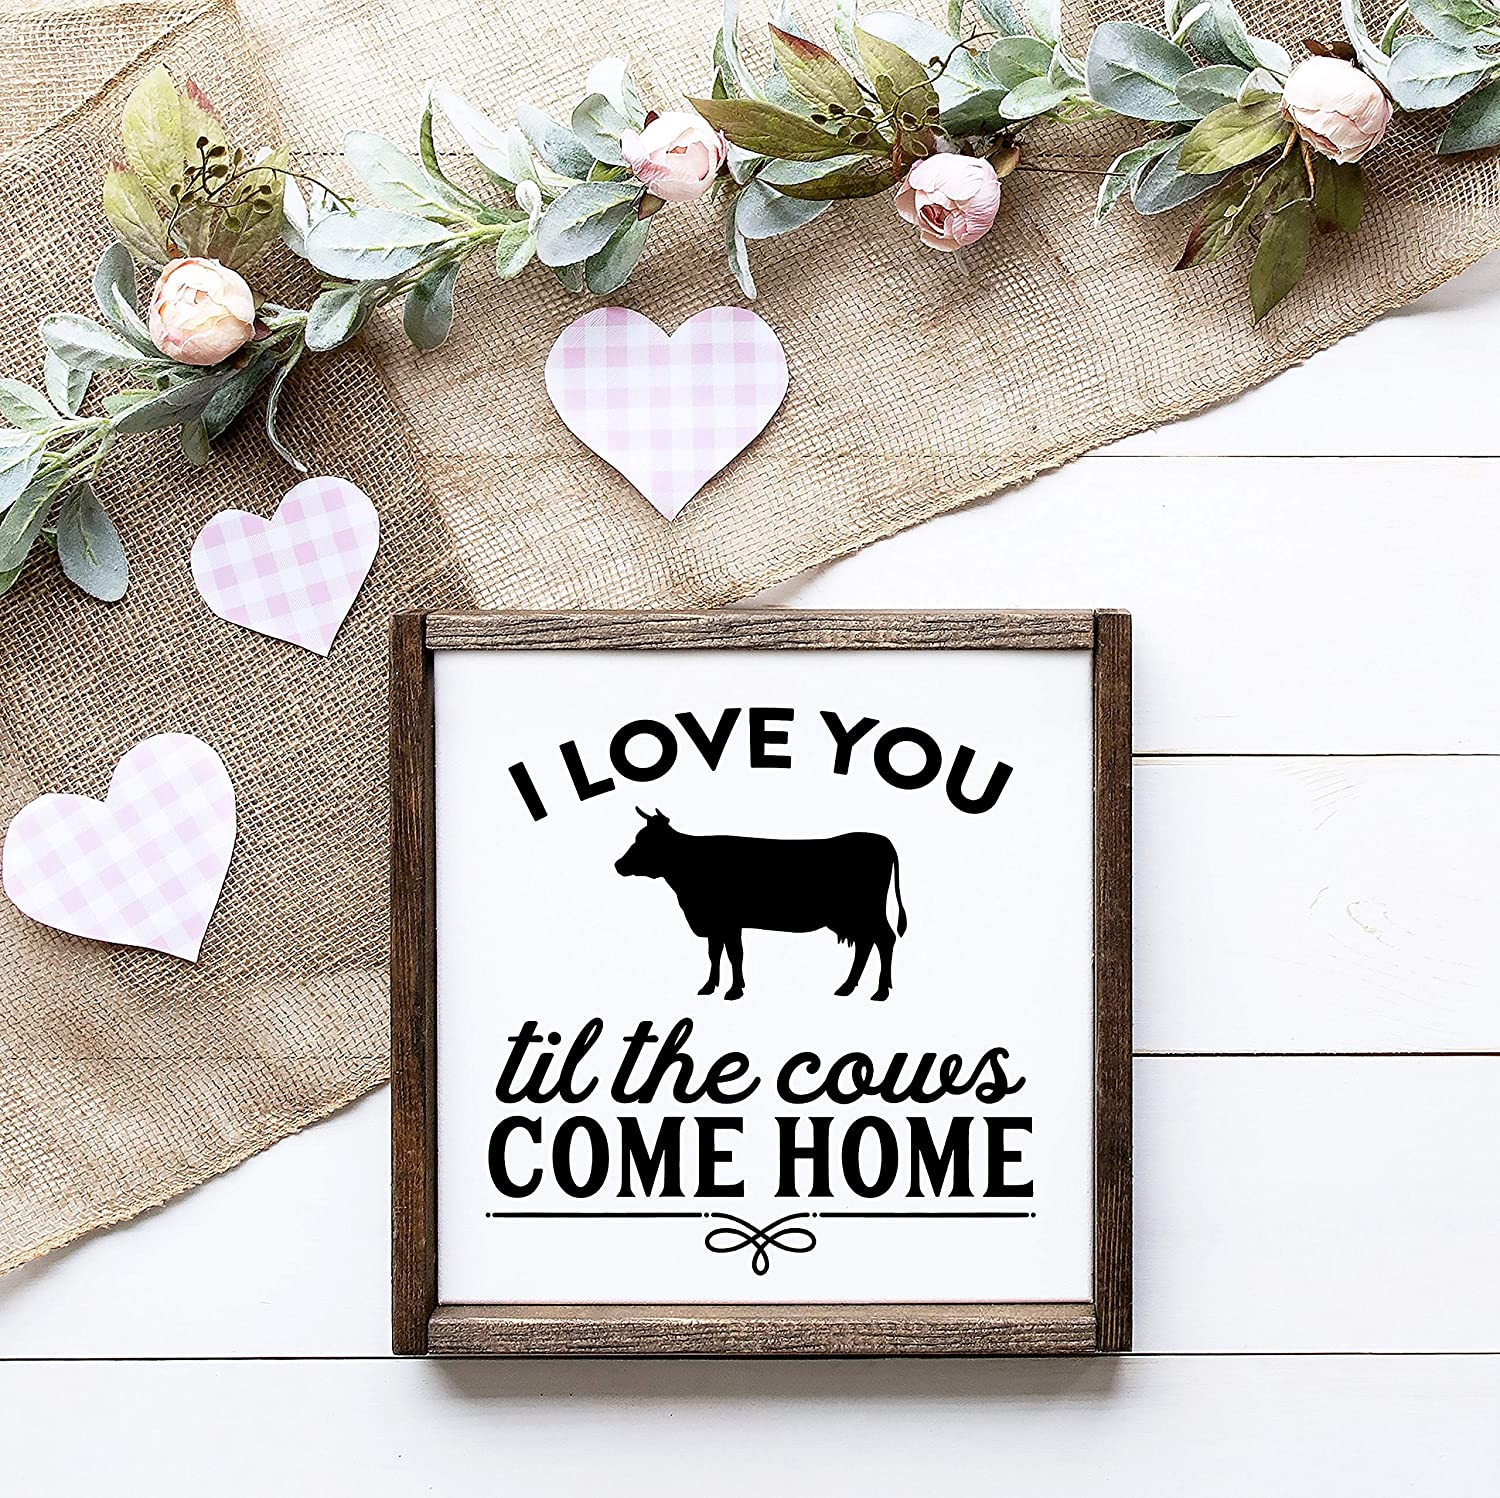 43LenaJon I Will Love You Til The Cows Come Home Sign- Farm Decor - Farm Life Decor - Cows Decor - Shelf Decor - Farmhouse Style - Inspired